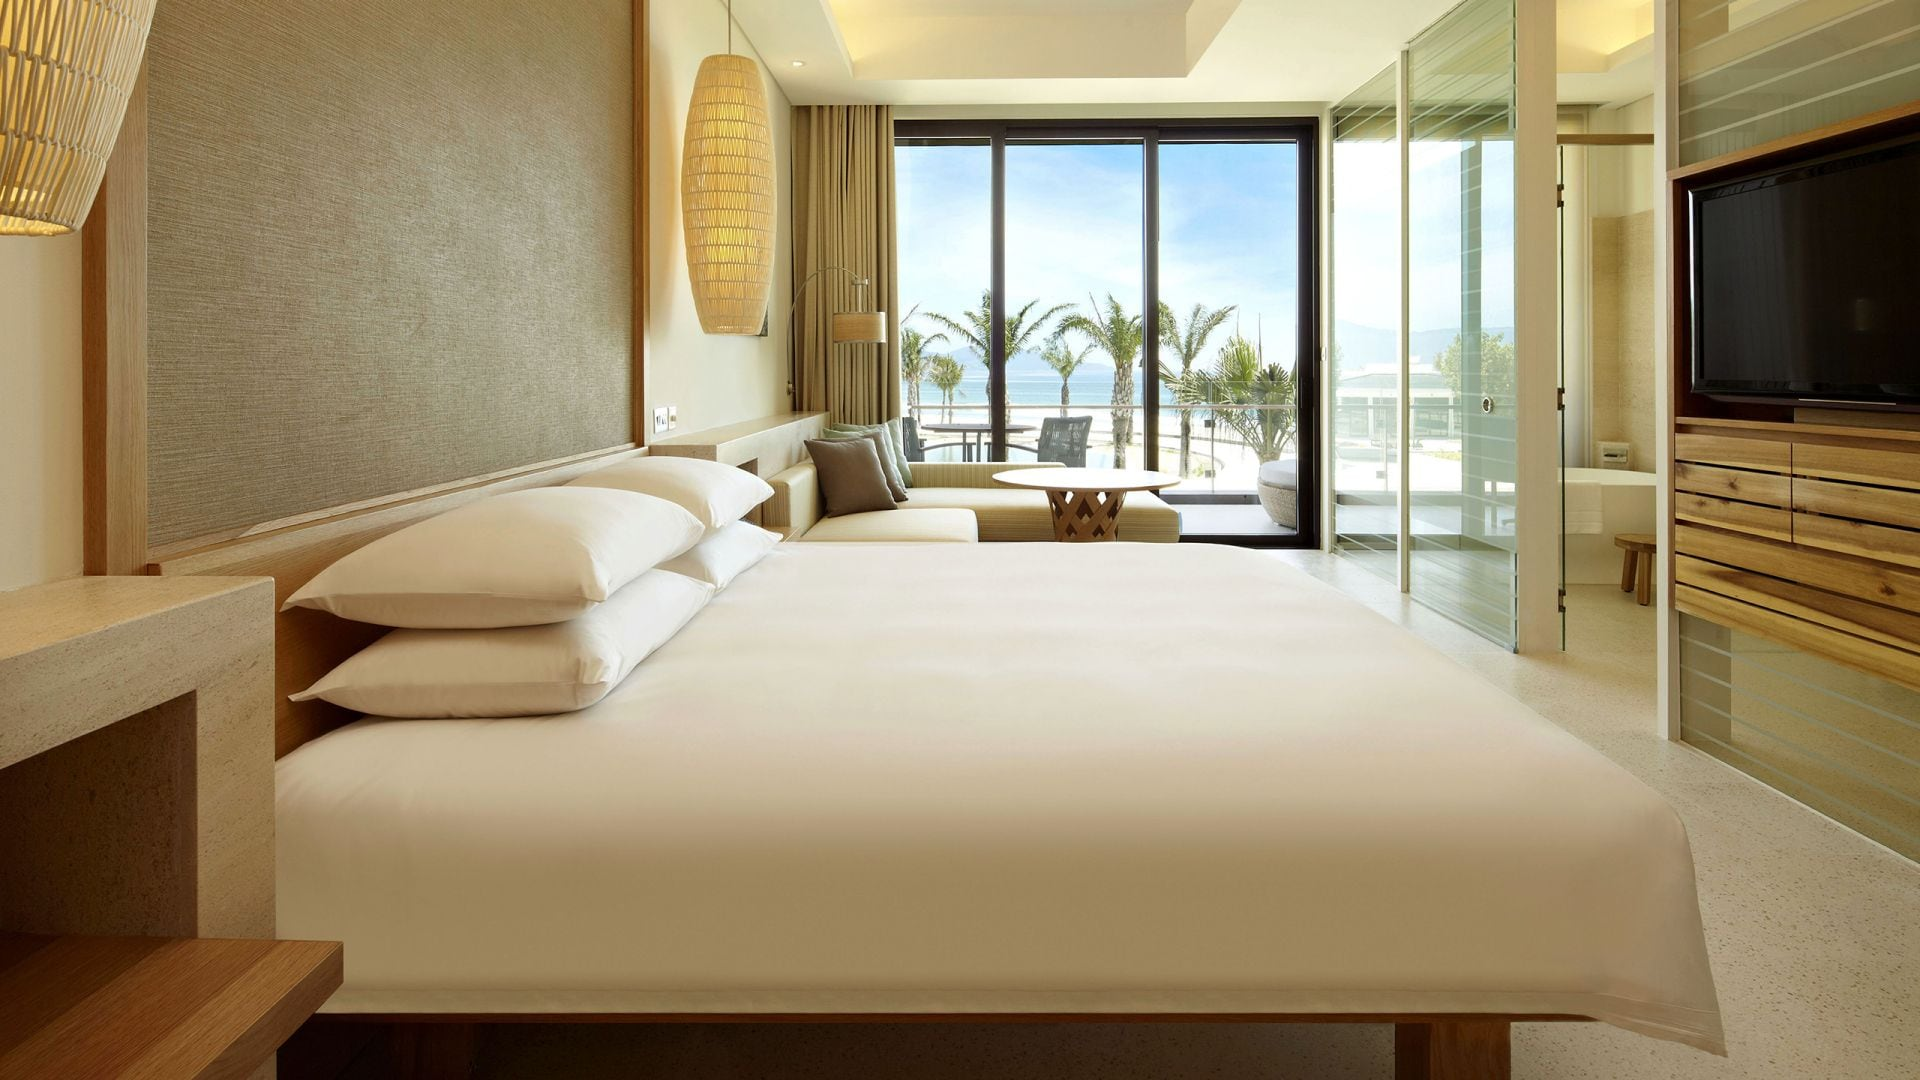 Da Nang Accommodation 5 Star, Hyatt Regency Danang